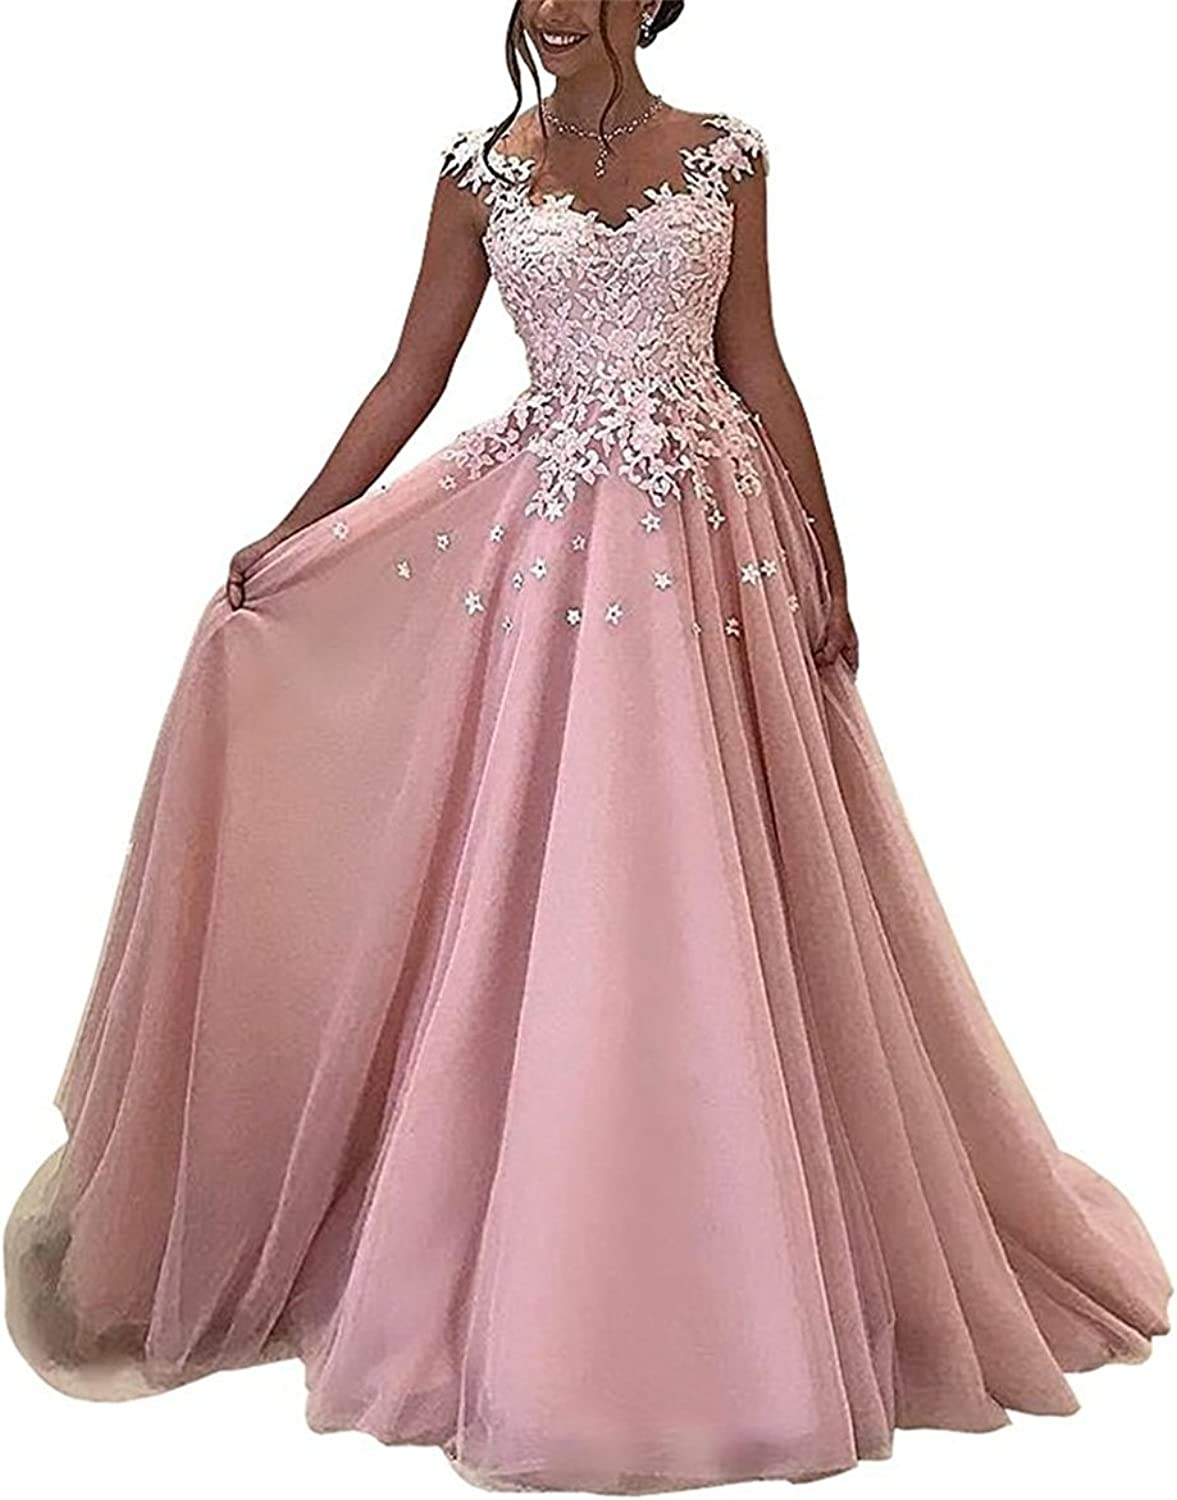 Alexzendra Scoop Neck ALine Prom Dress Applique Illusion Back Long Evening Dress